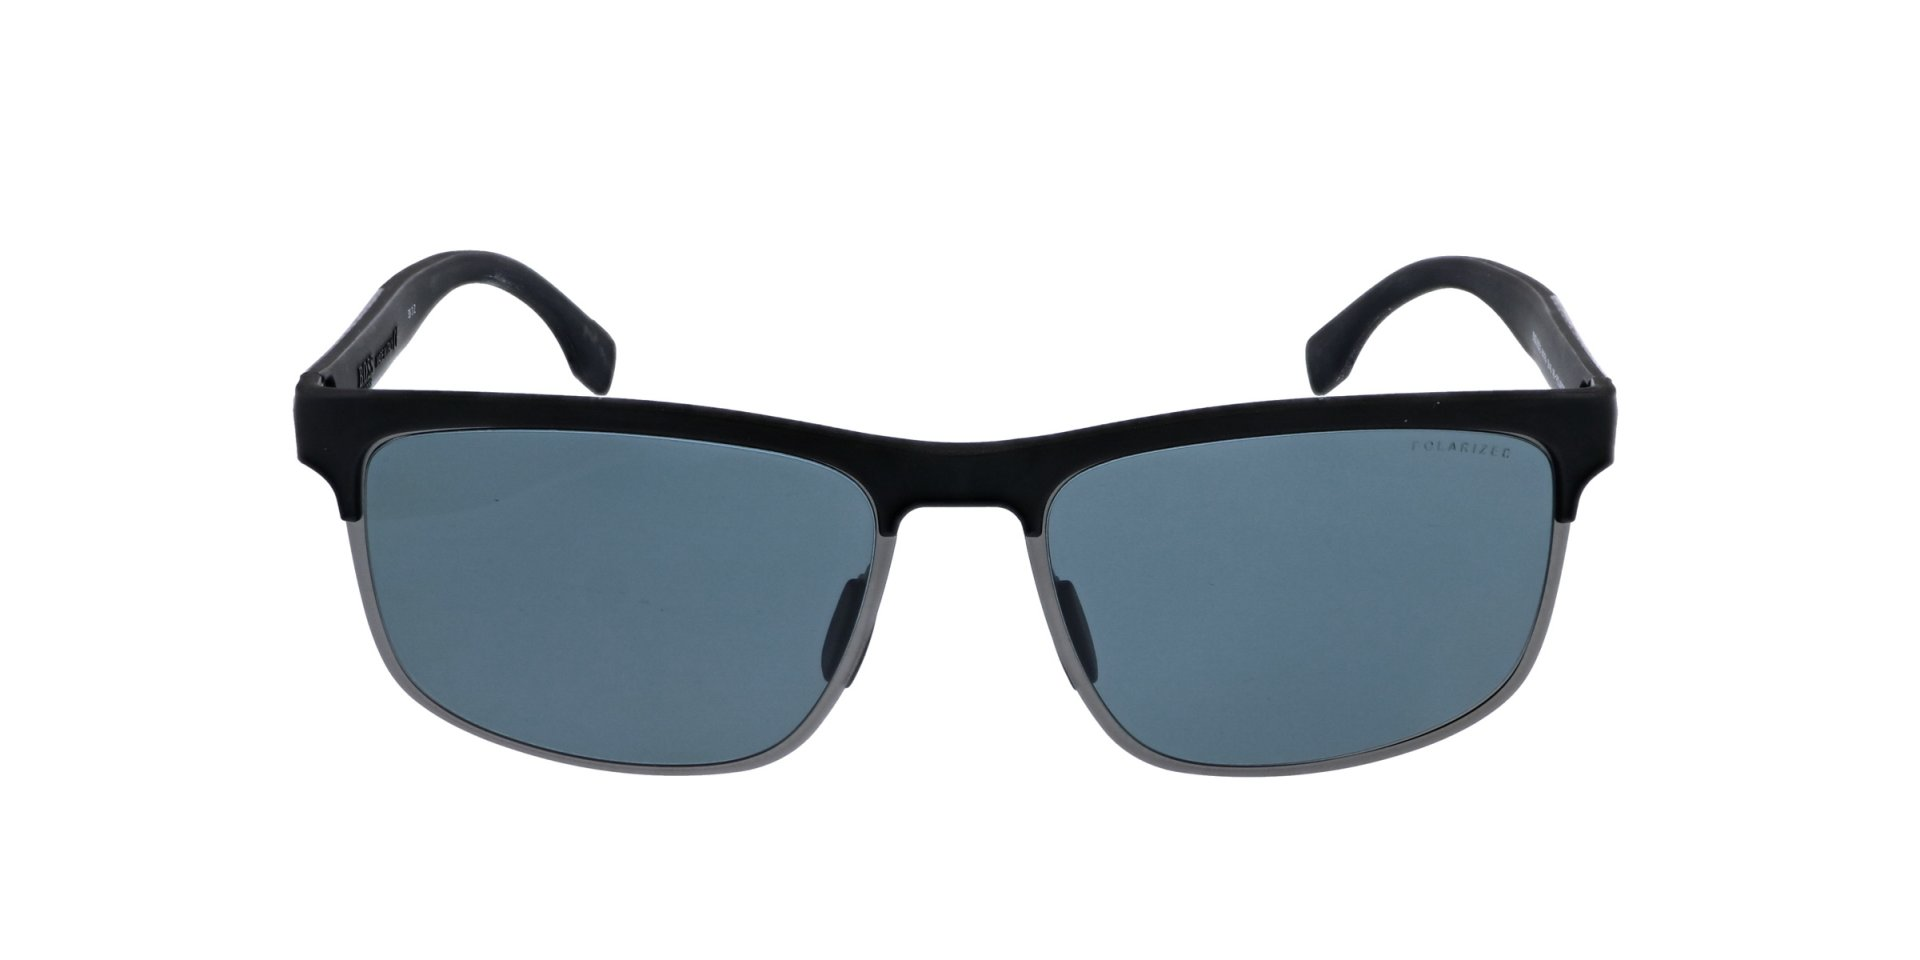 66f6a25f40 Sunglasses HUGO BOSS